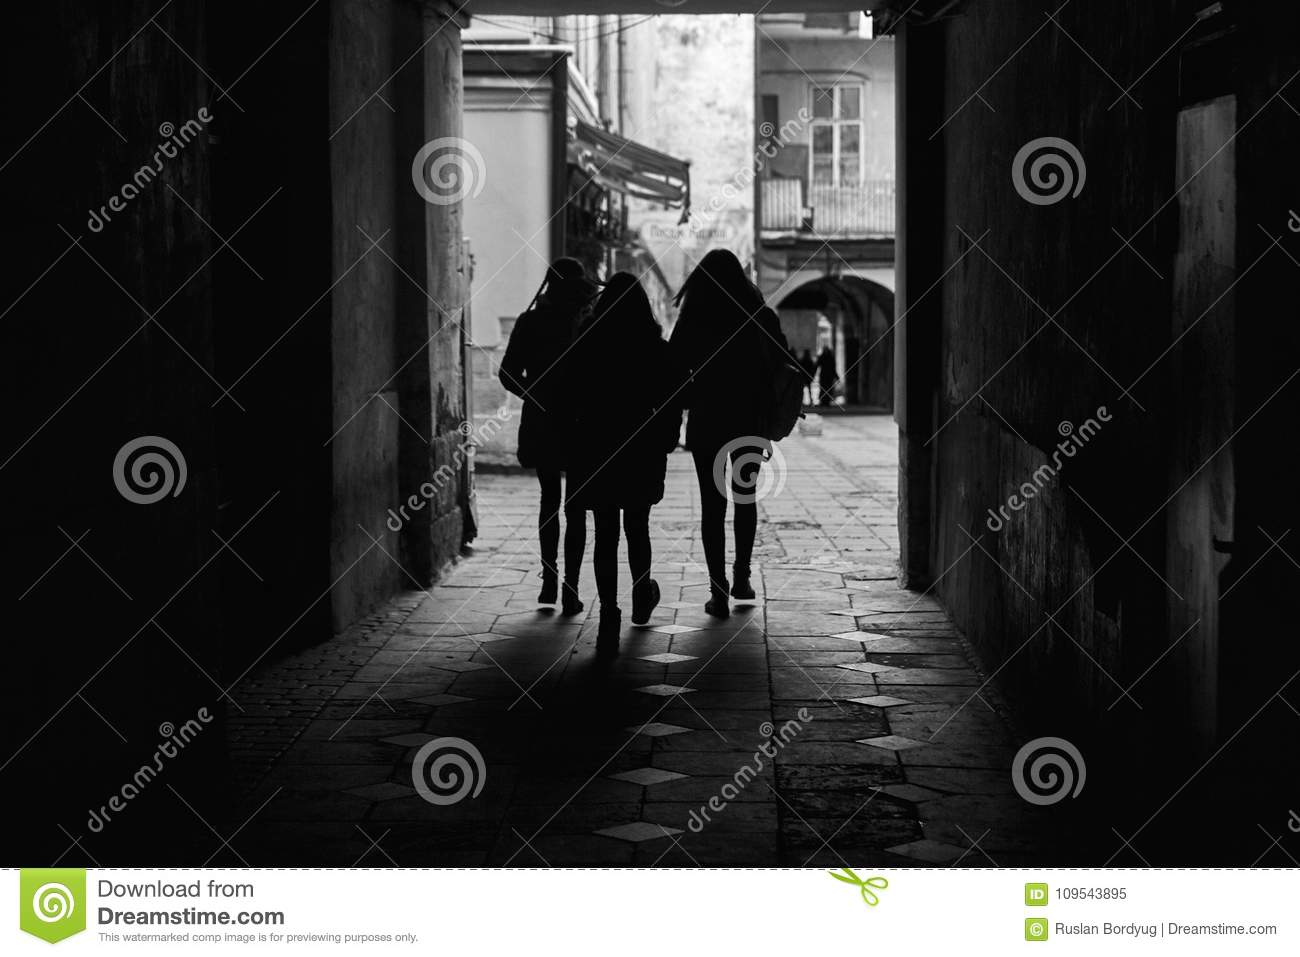 Silhouettes Of People Walking Through A Tunnel An Ancient City Black And White Photography